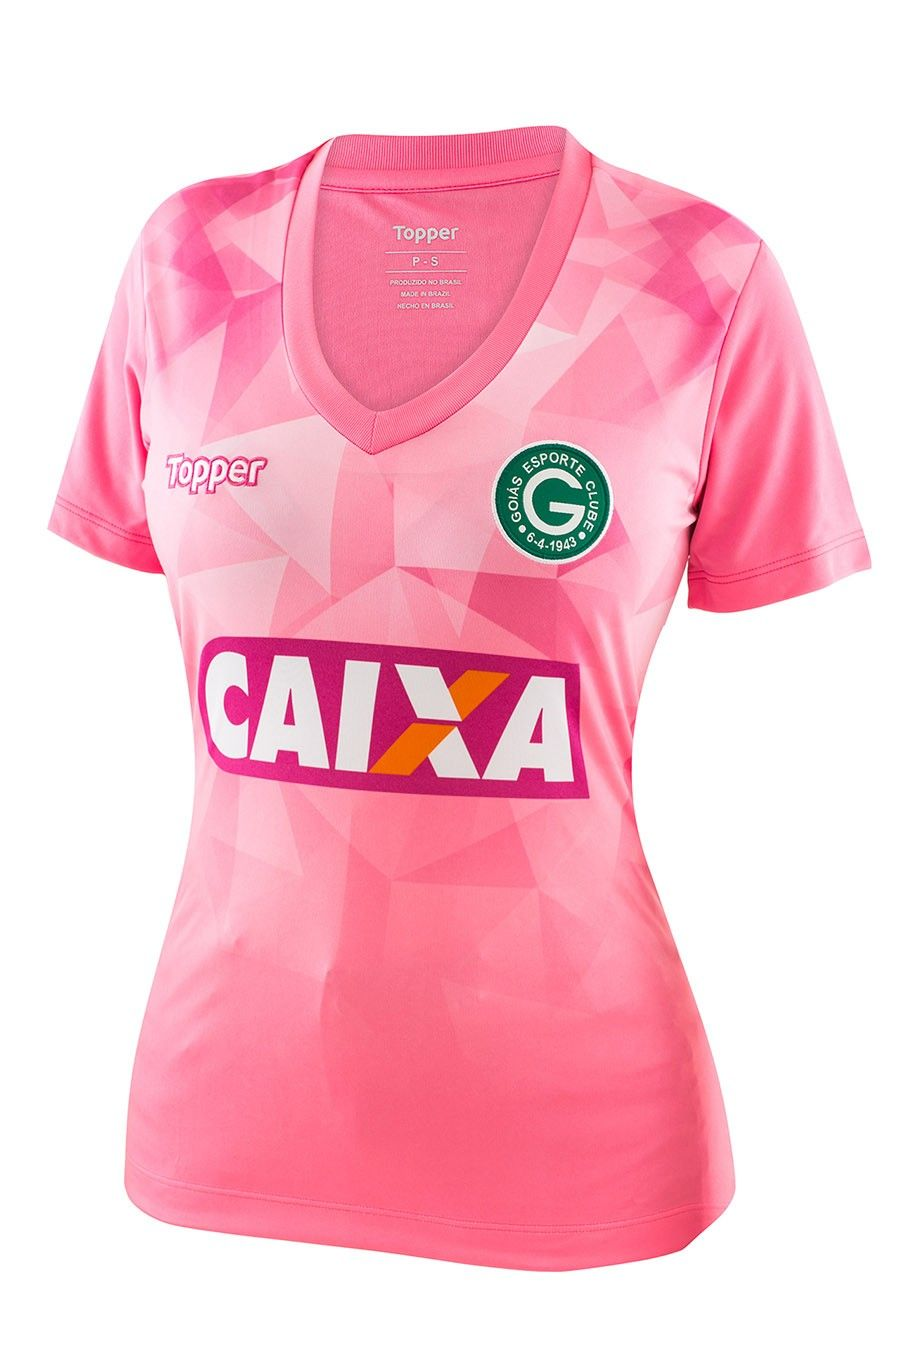 Goias 2018 Rose October kit Camisetas Deportivas Mujer 448ba3ff072d5